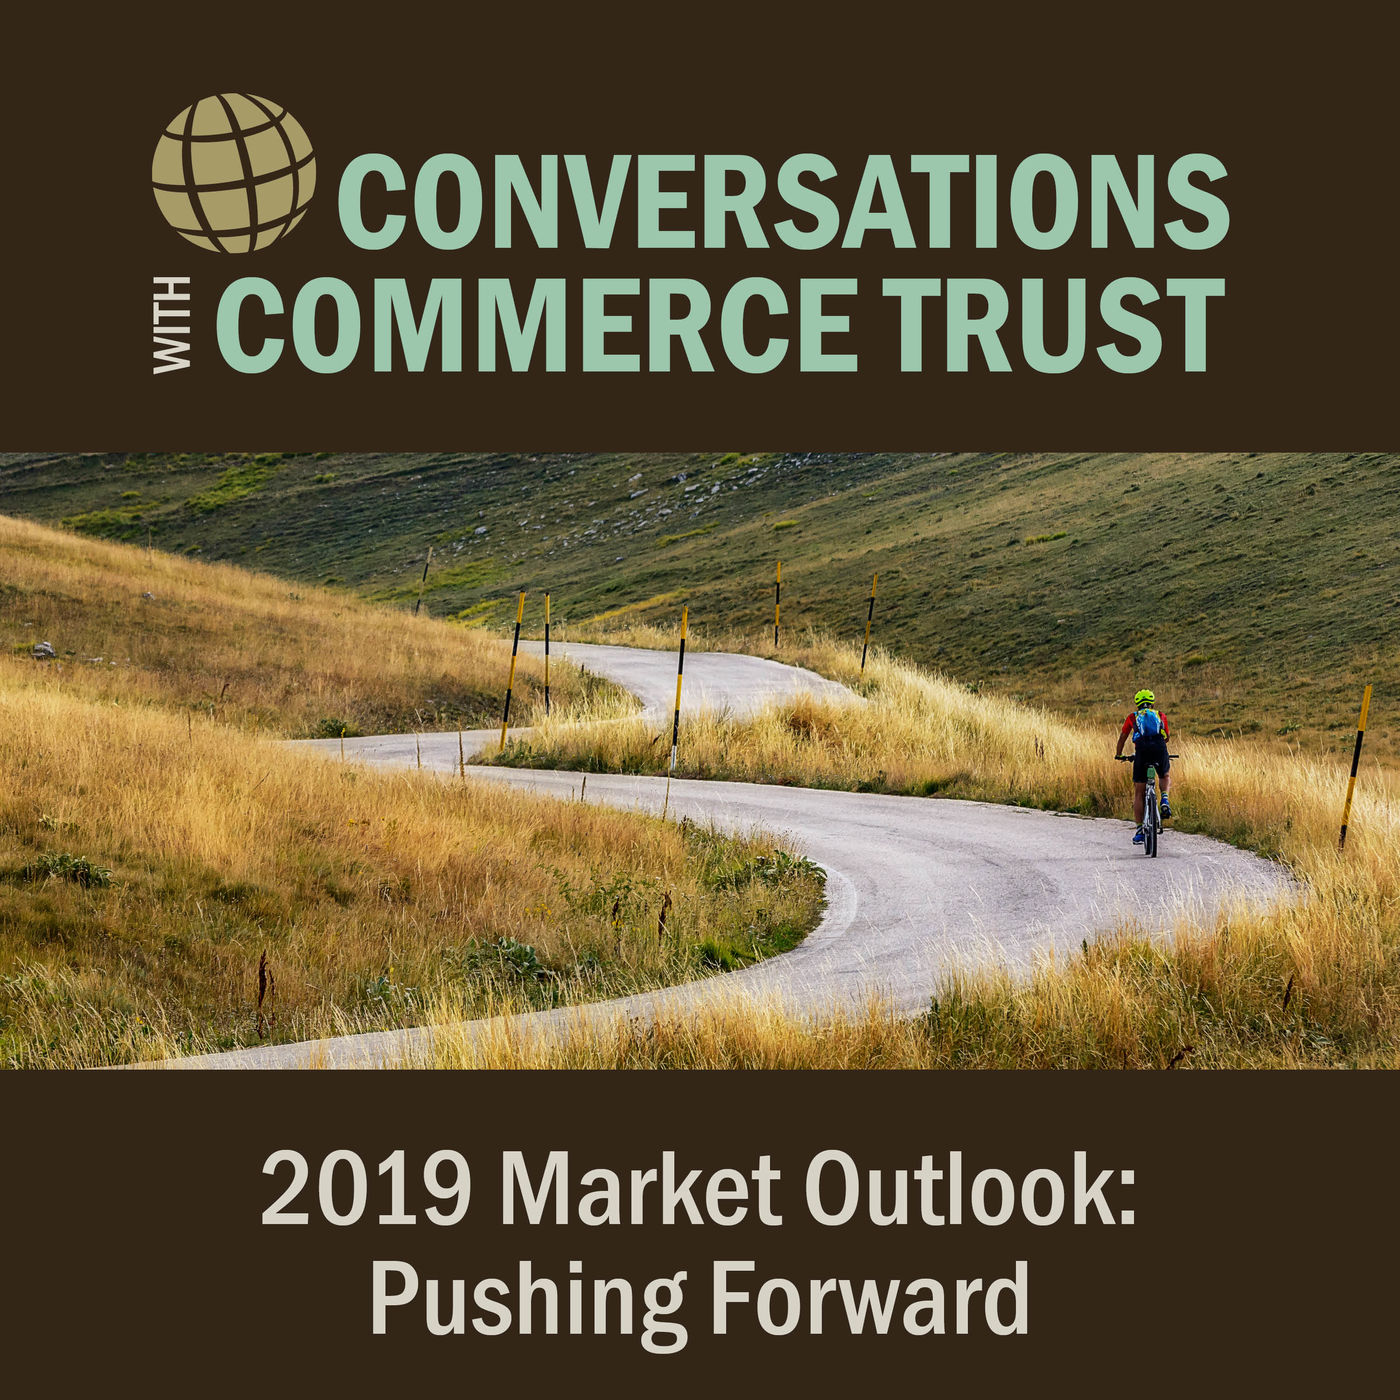 2019 Market Outlook Overview